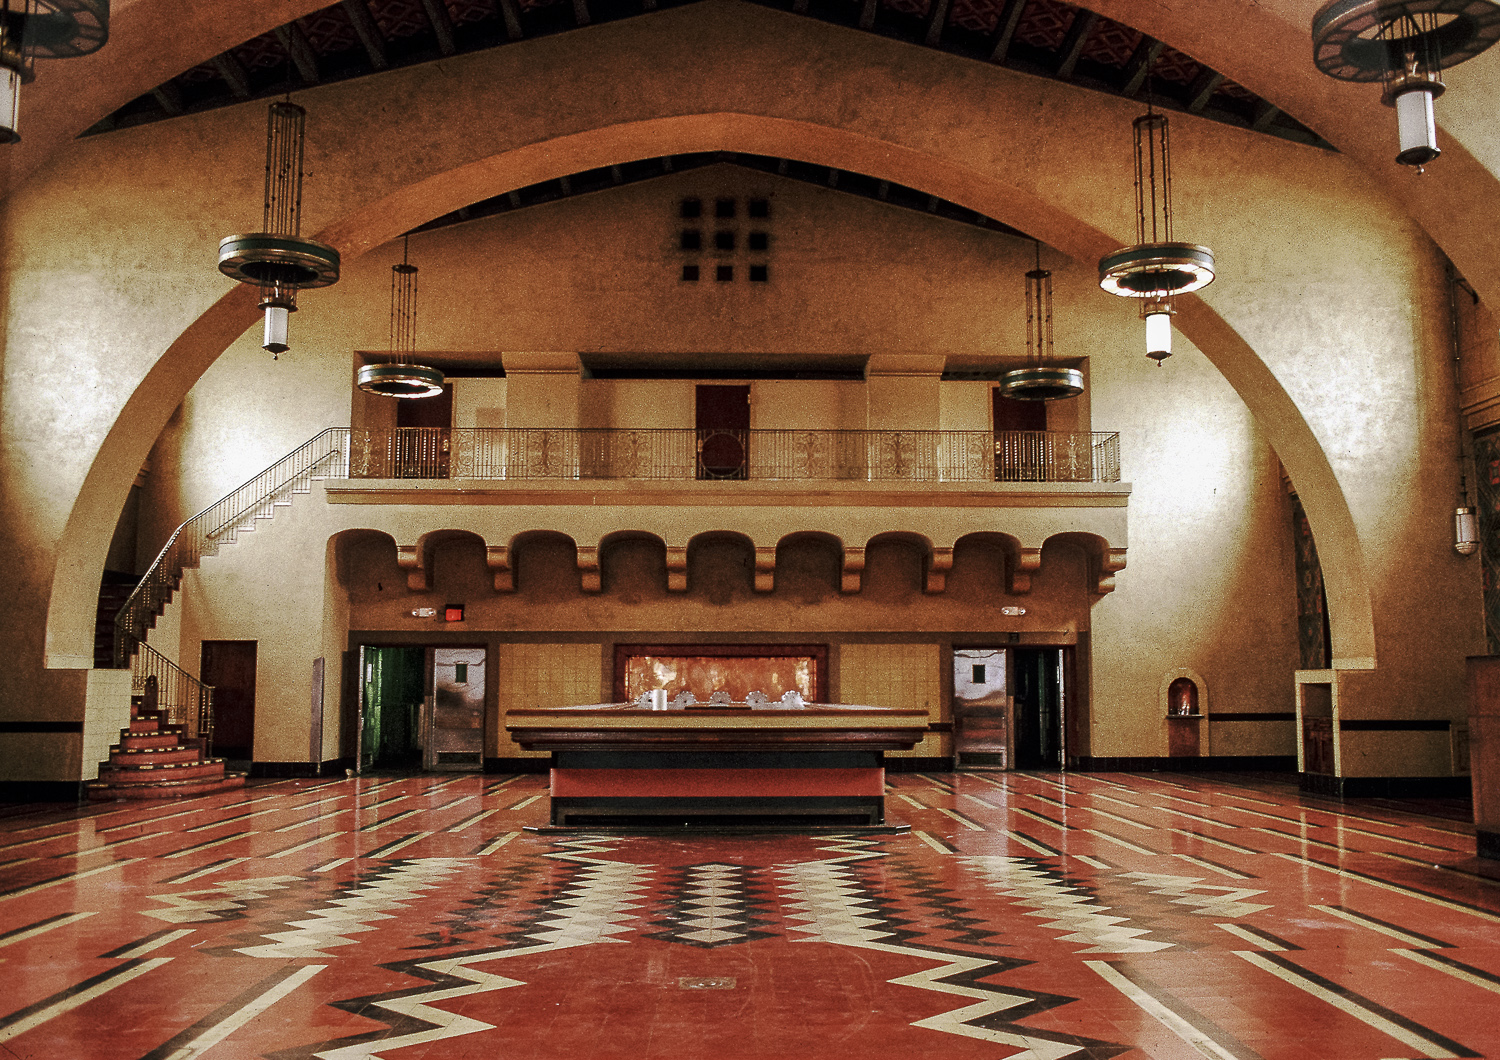 Union Station - Los Angeles, 1998